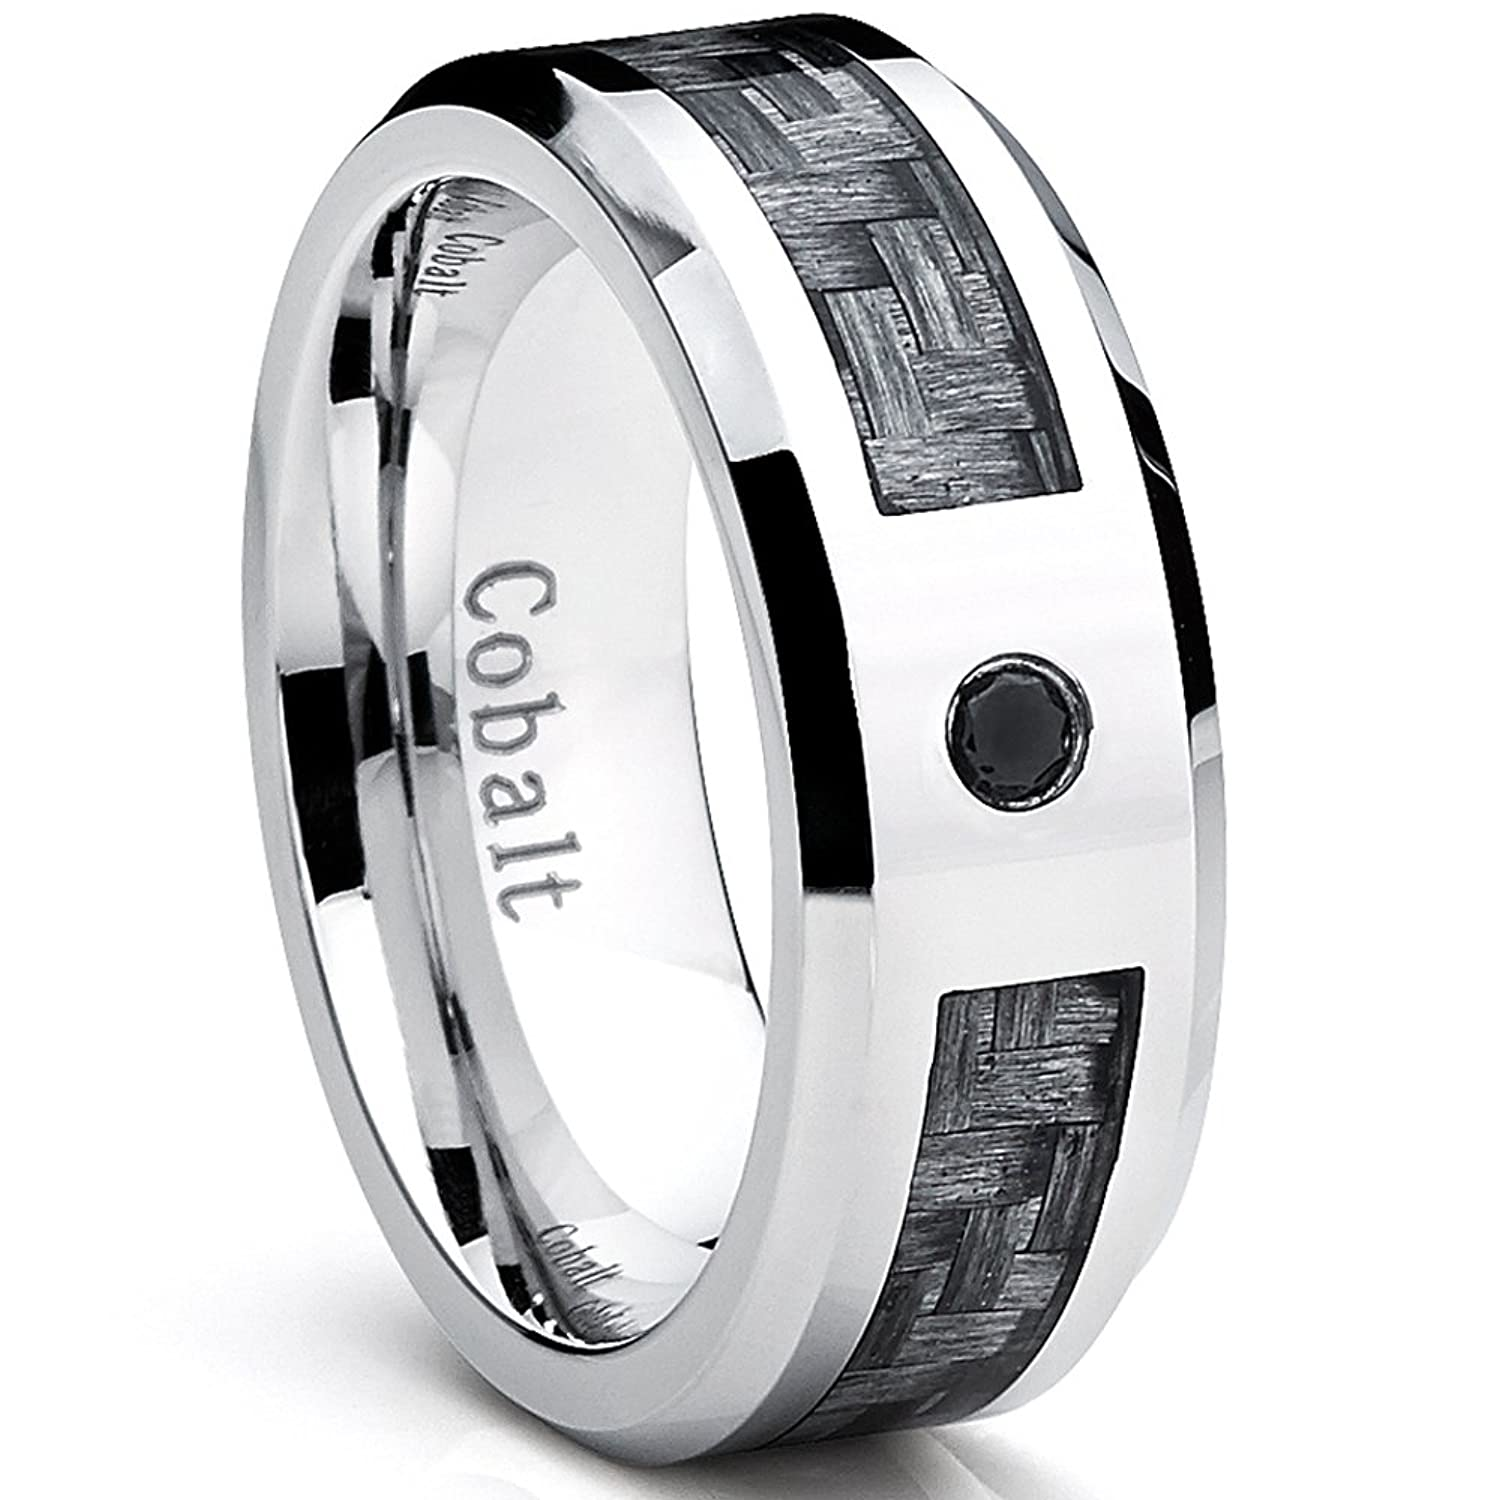 carbon on jewelry titanium mm product white overstock wedding rings inlay free shipping black orders fiber ring watches over